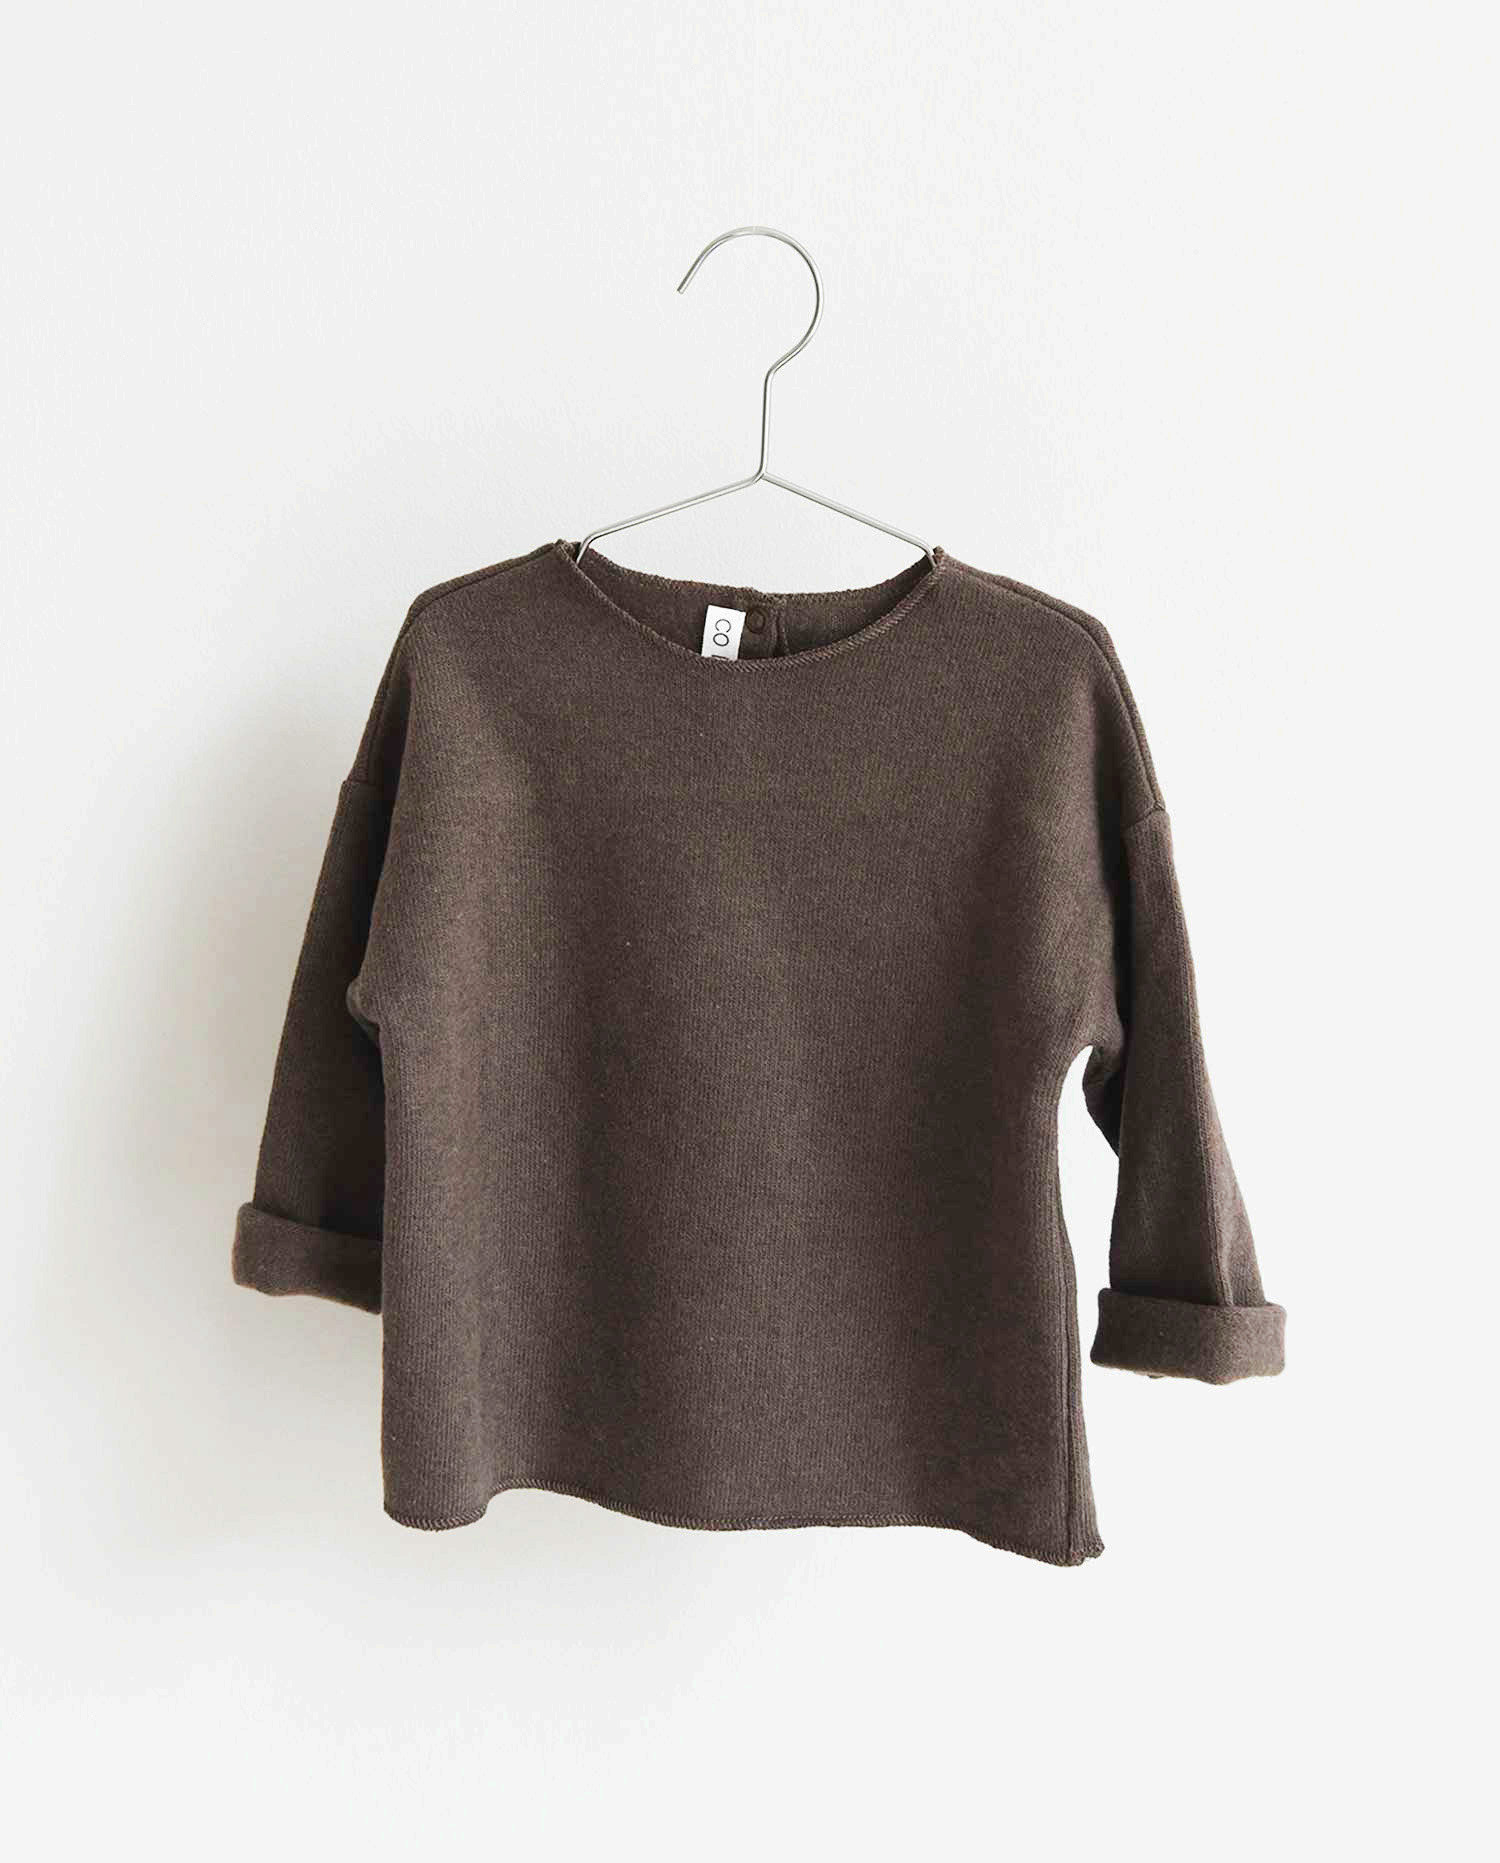 CO LABEL Warm cotton Billie blouse - Mellow brown -